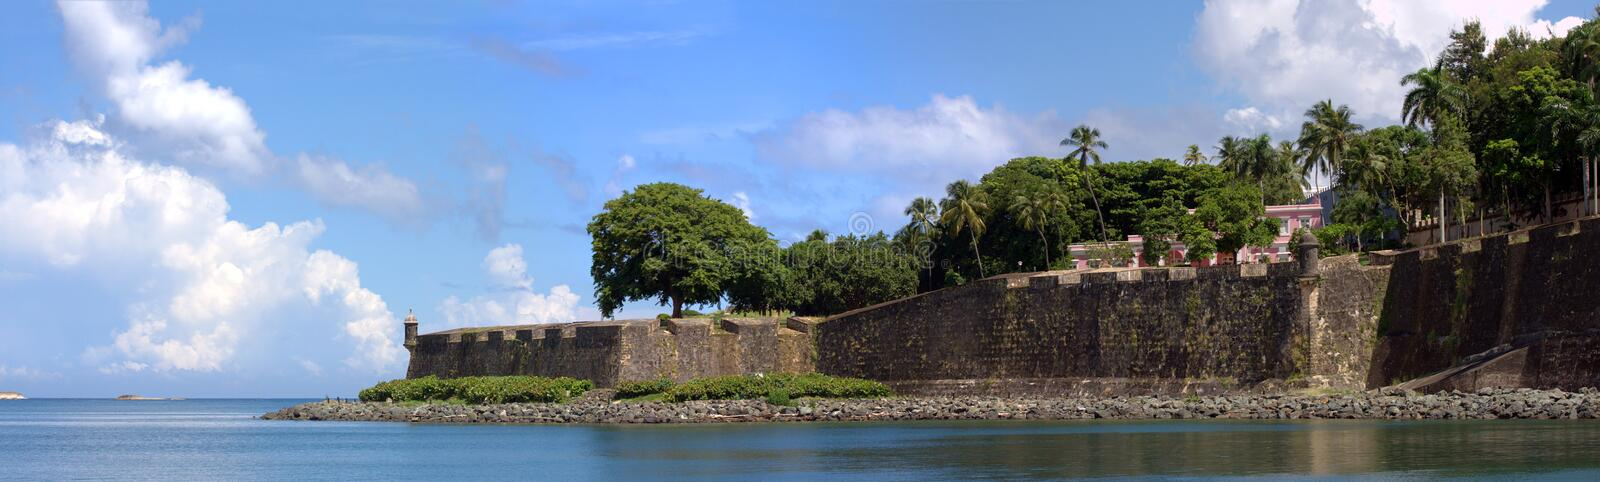 Old San Juan City Wall. The city boundary and old decaying wall of El Morro fort located in Old San Juan Puerto Rico royalty free stock images